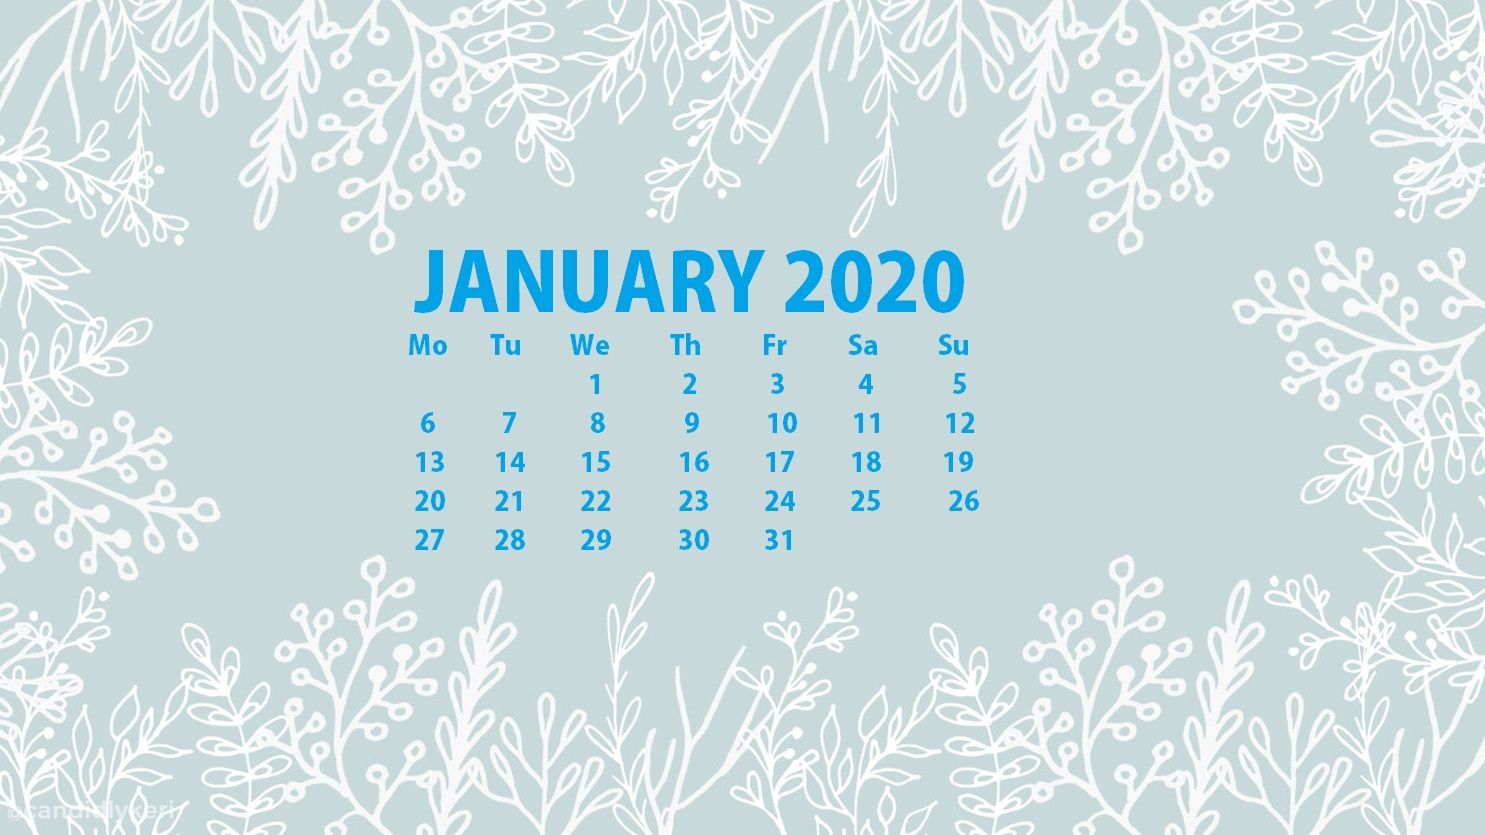 January 2020 Calendar Wallpapers   Top January 2020 Calendar 1485x835